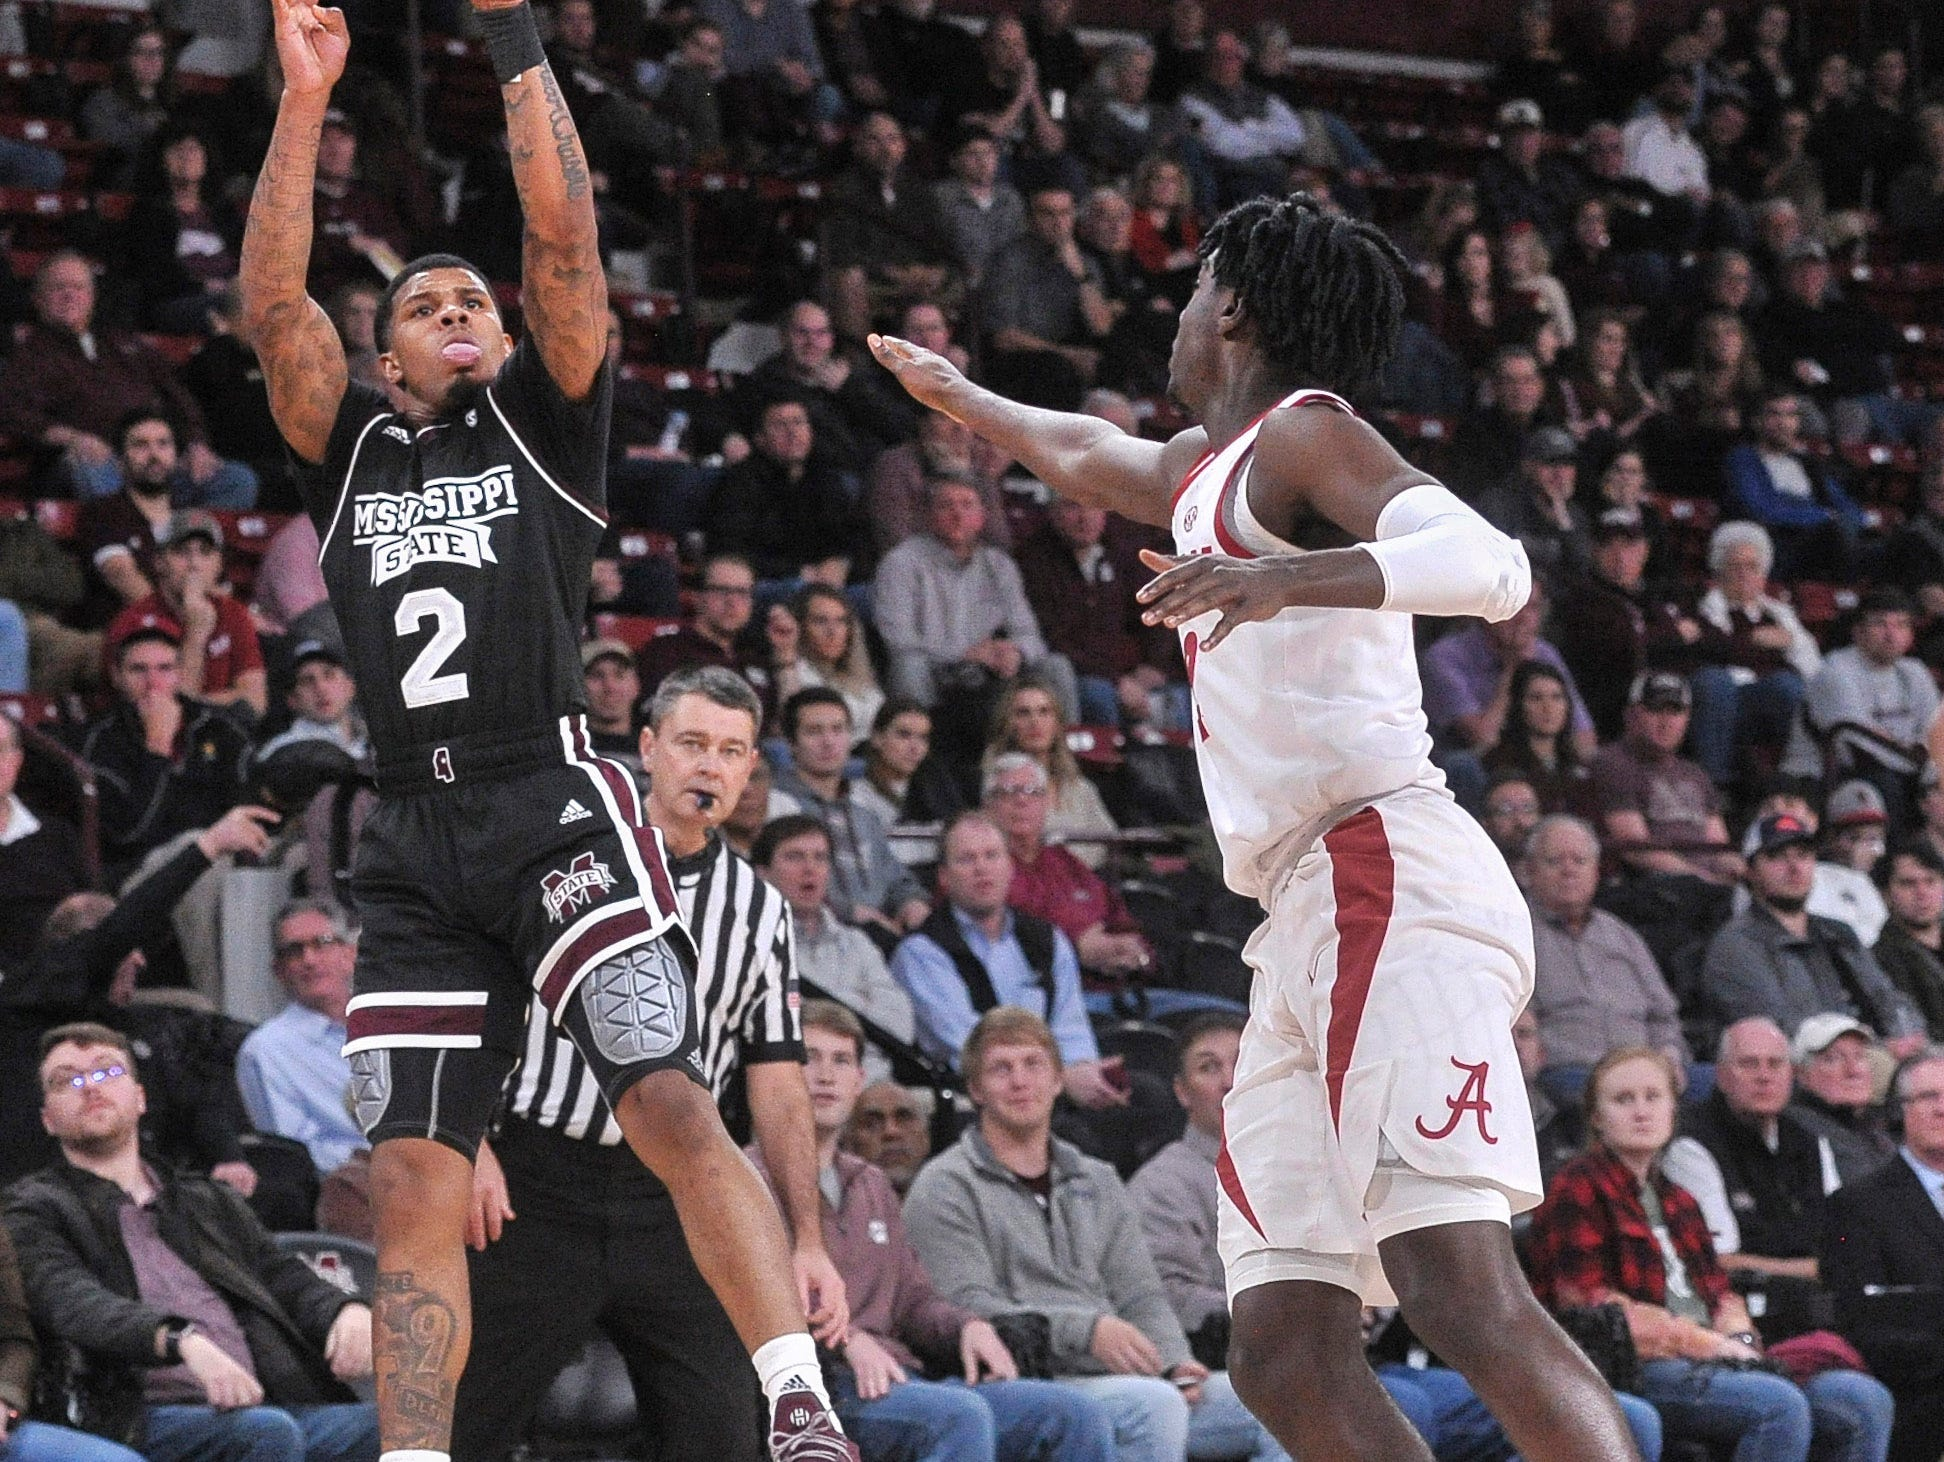 Feb 12, 2019; Starkville, MS, USA; Mississippi State Bulldogs guard Lamar Peters (2) shoots against Alabama Crimson Tide guard Kira Lewis Jr. (2) during the first half at Humphrey Coliseum. Mandatory Credit: Justin Ford-USA TODAY Sports